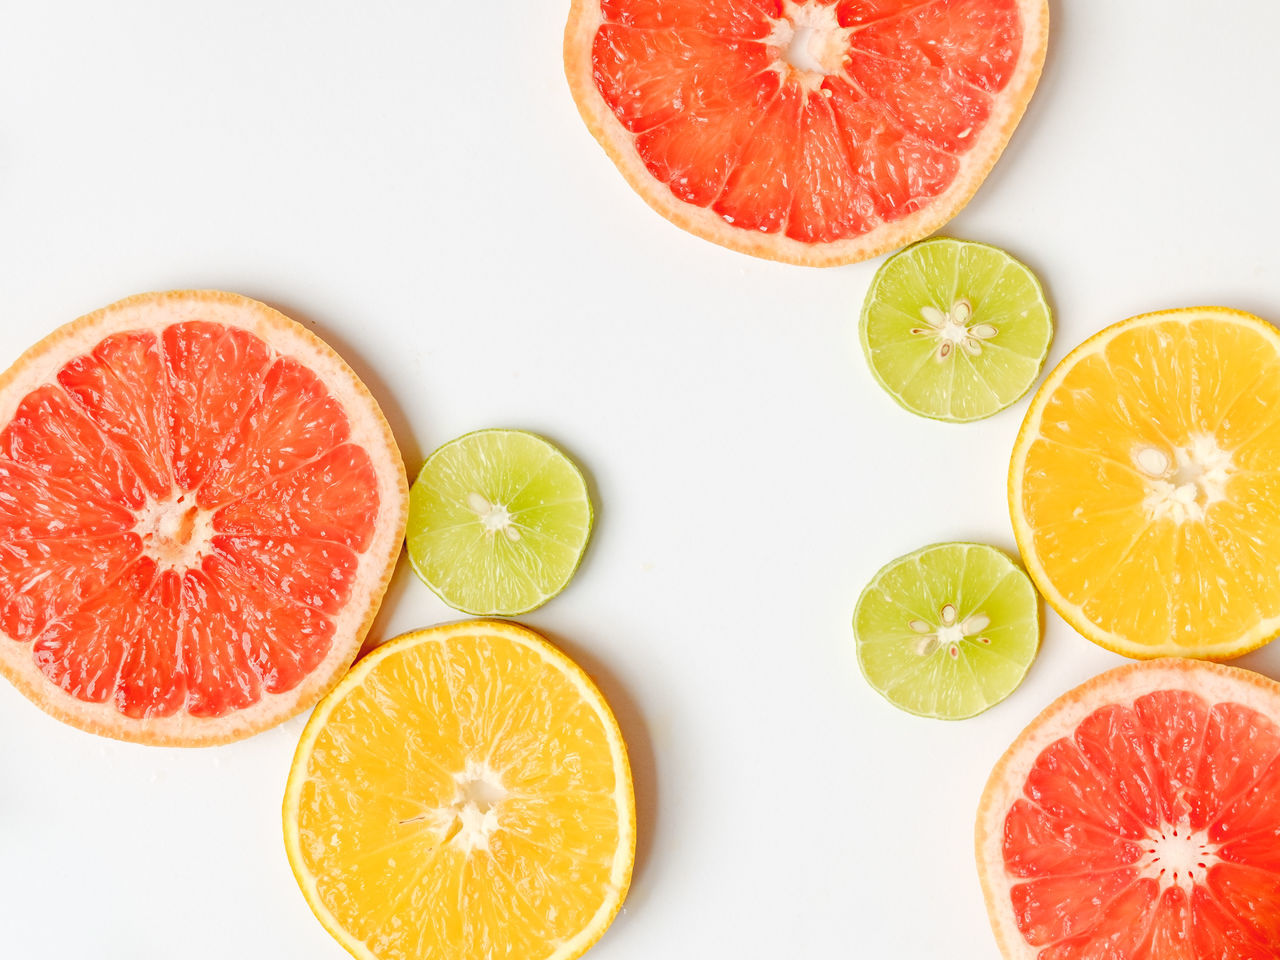 Blood Orange Circles Citrus Fruit Close-up Cross Section Directly Above Food Food And Drink Freshness Fruit Geometric Shape Geometry In Nature Grapefruit Healthy Eating High Angle View Indoors  Lemon Lime No People Orange Fruit SLICE Sour Taste Studio Shot White Background